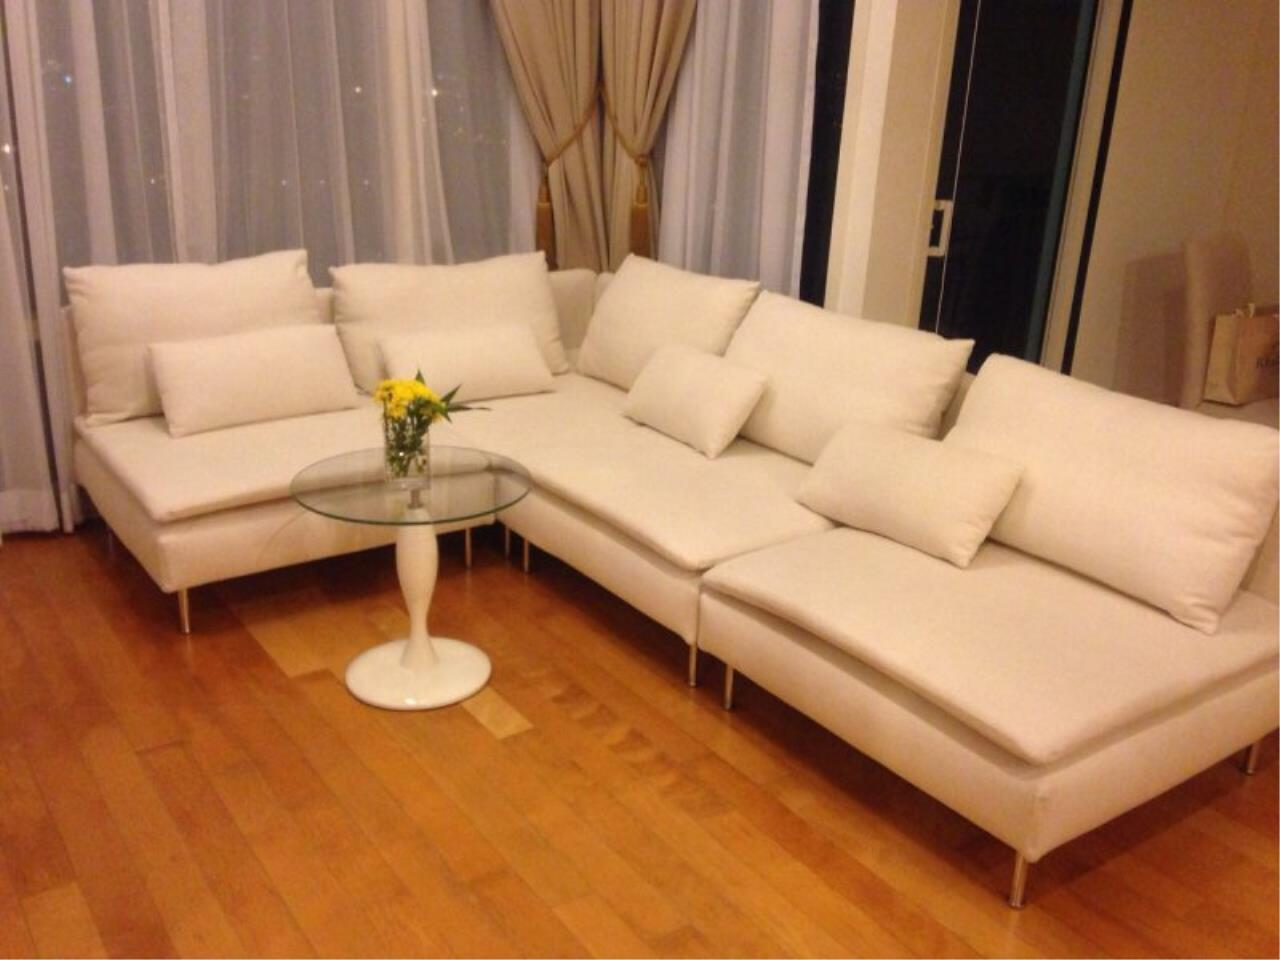 Piri Property Agency's Duplex 1 Bedroom in the Villa Ratchatewi Condo for rent on high floor 1